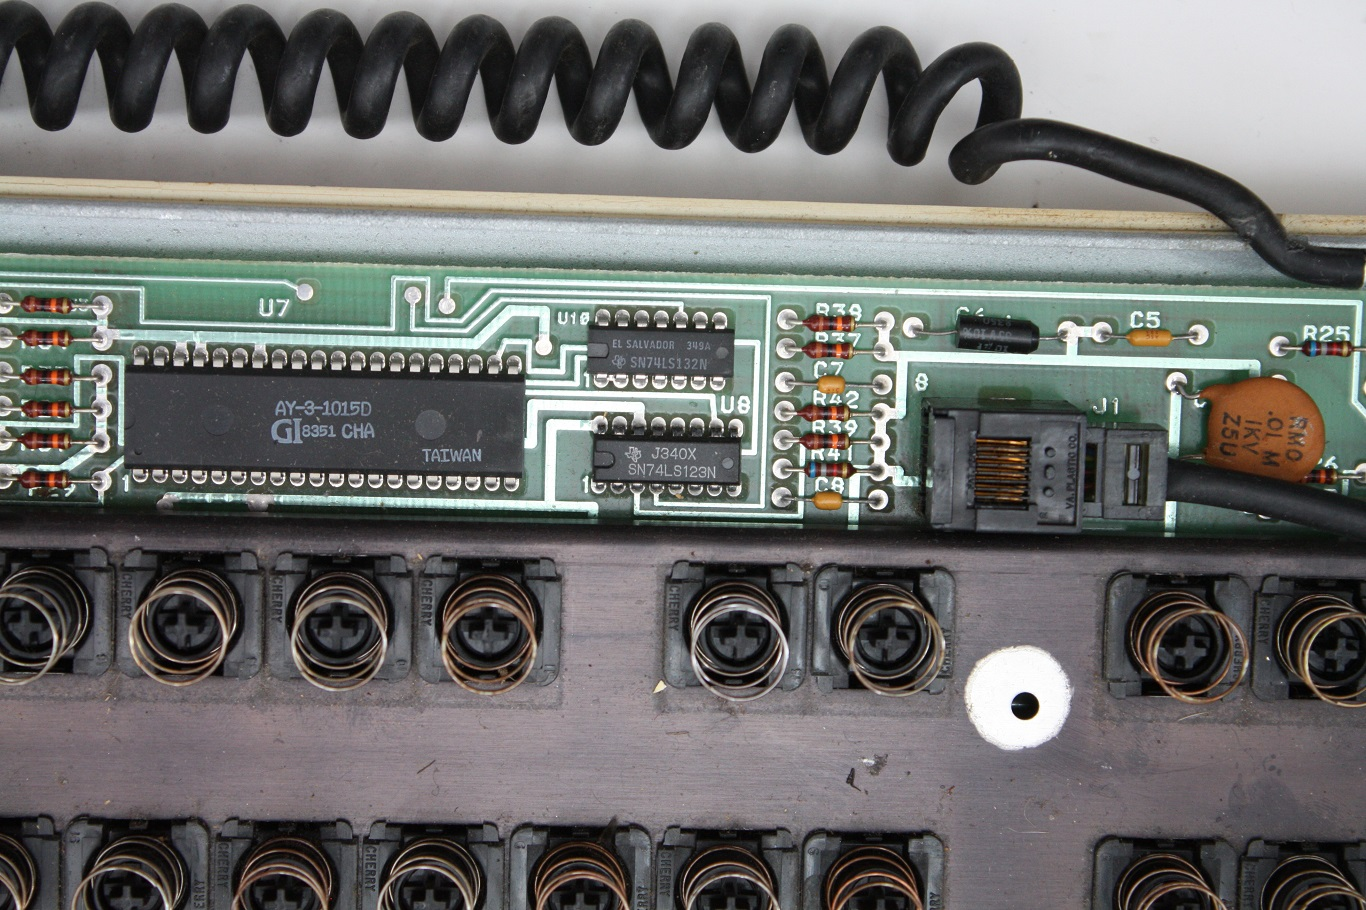 Cherry Terminal Keyboard - PCB components 2.jpg